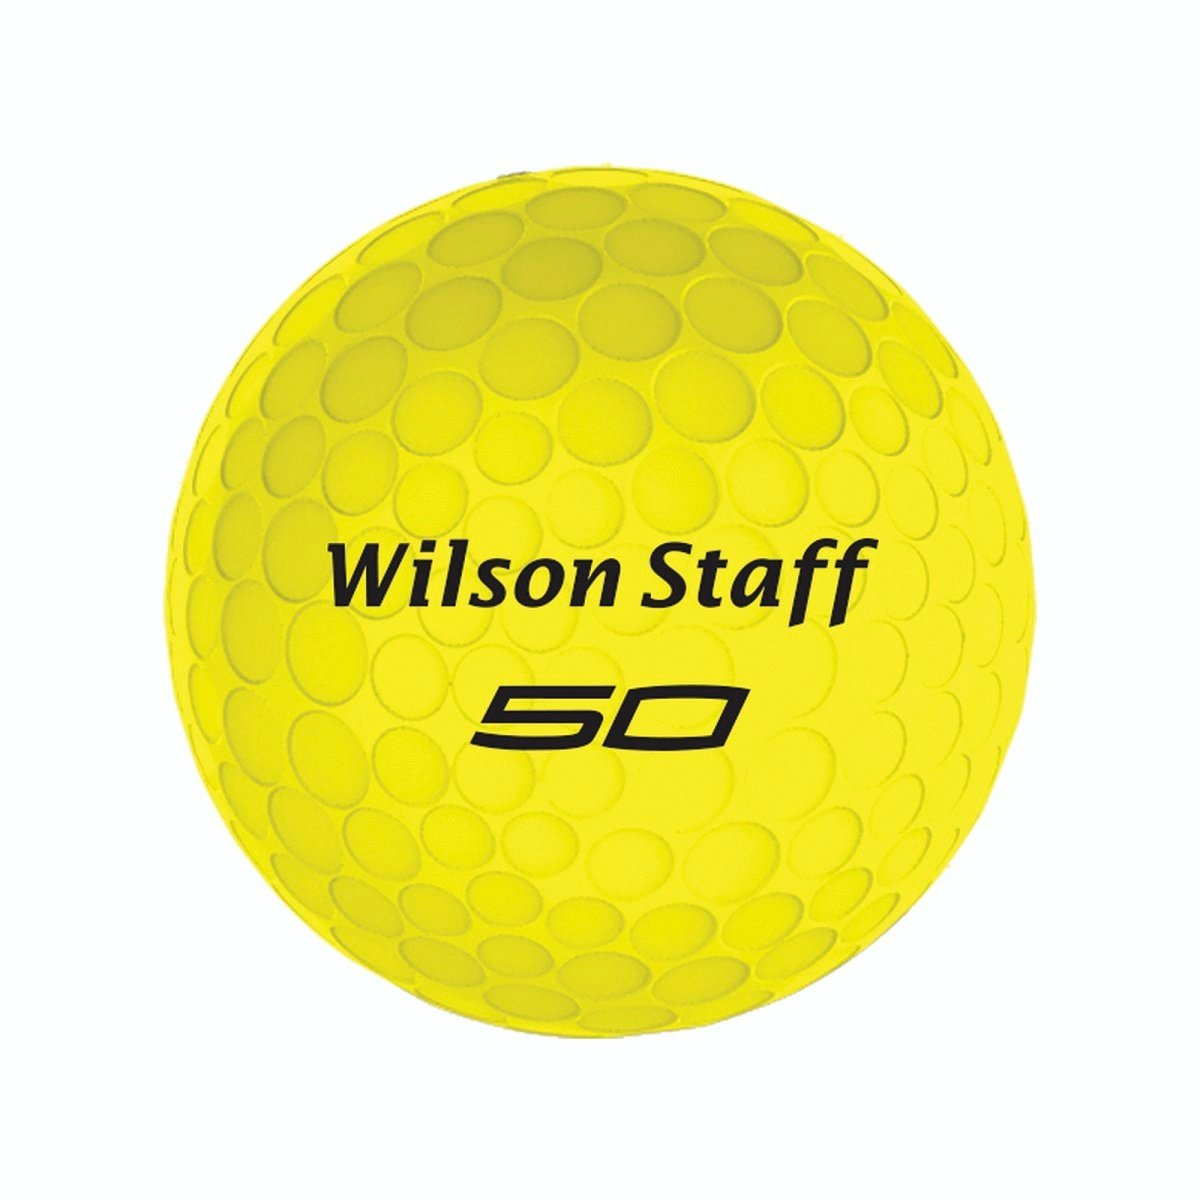 Wilson Staff  Fifty Elite Golf Balls, Yellow, Pack of 12 by Wilson